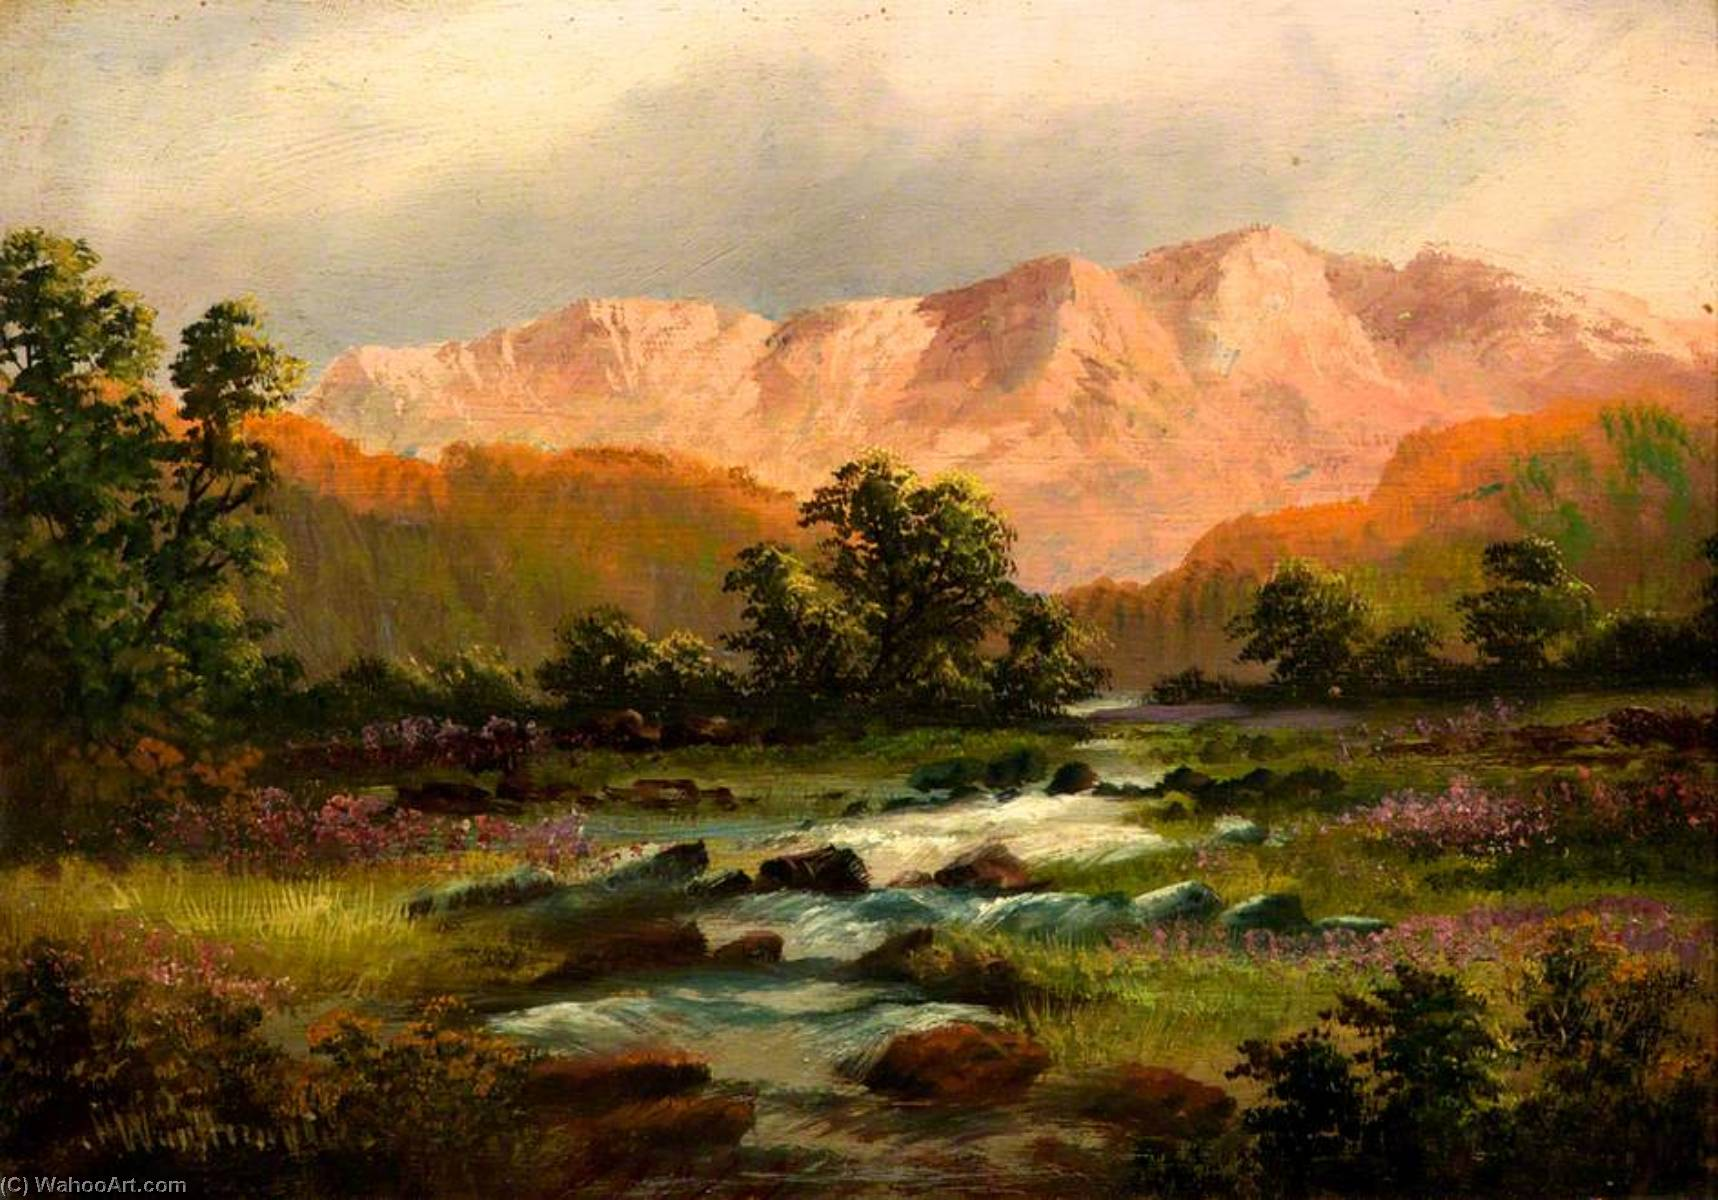 Landscape with Mountains by Alfred Worthington | Art Reproduction | ArtsDot.com